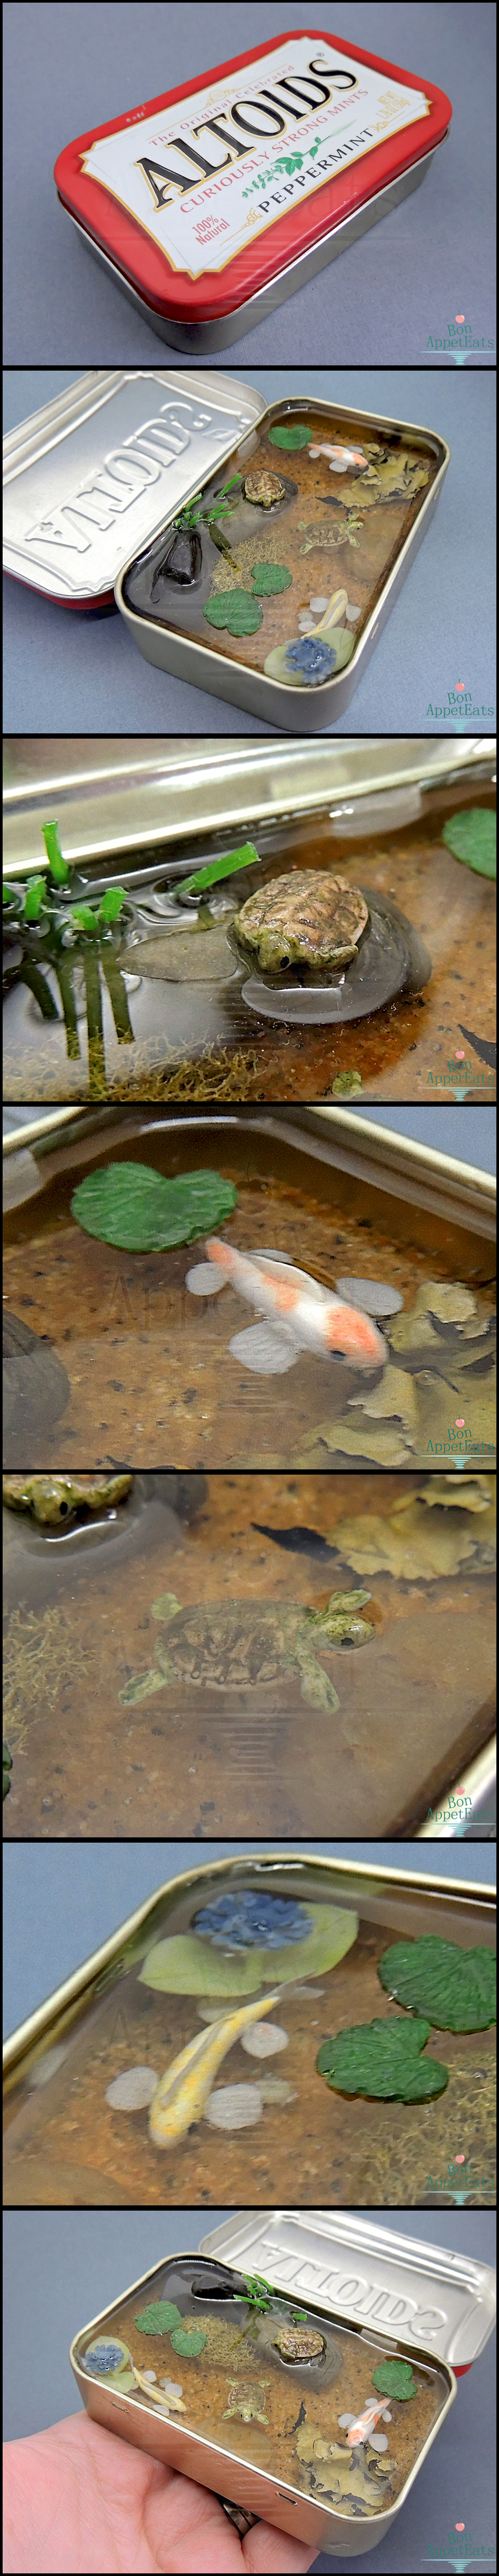 FOR SALE - Miniature Koi and Turtle Altoids Pond by Bon-AppetEats